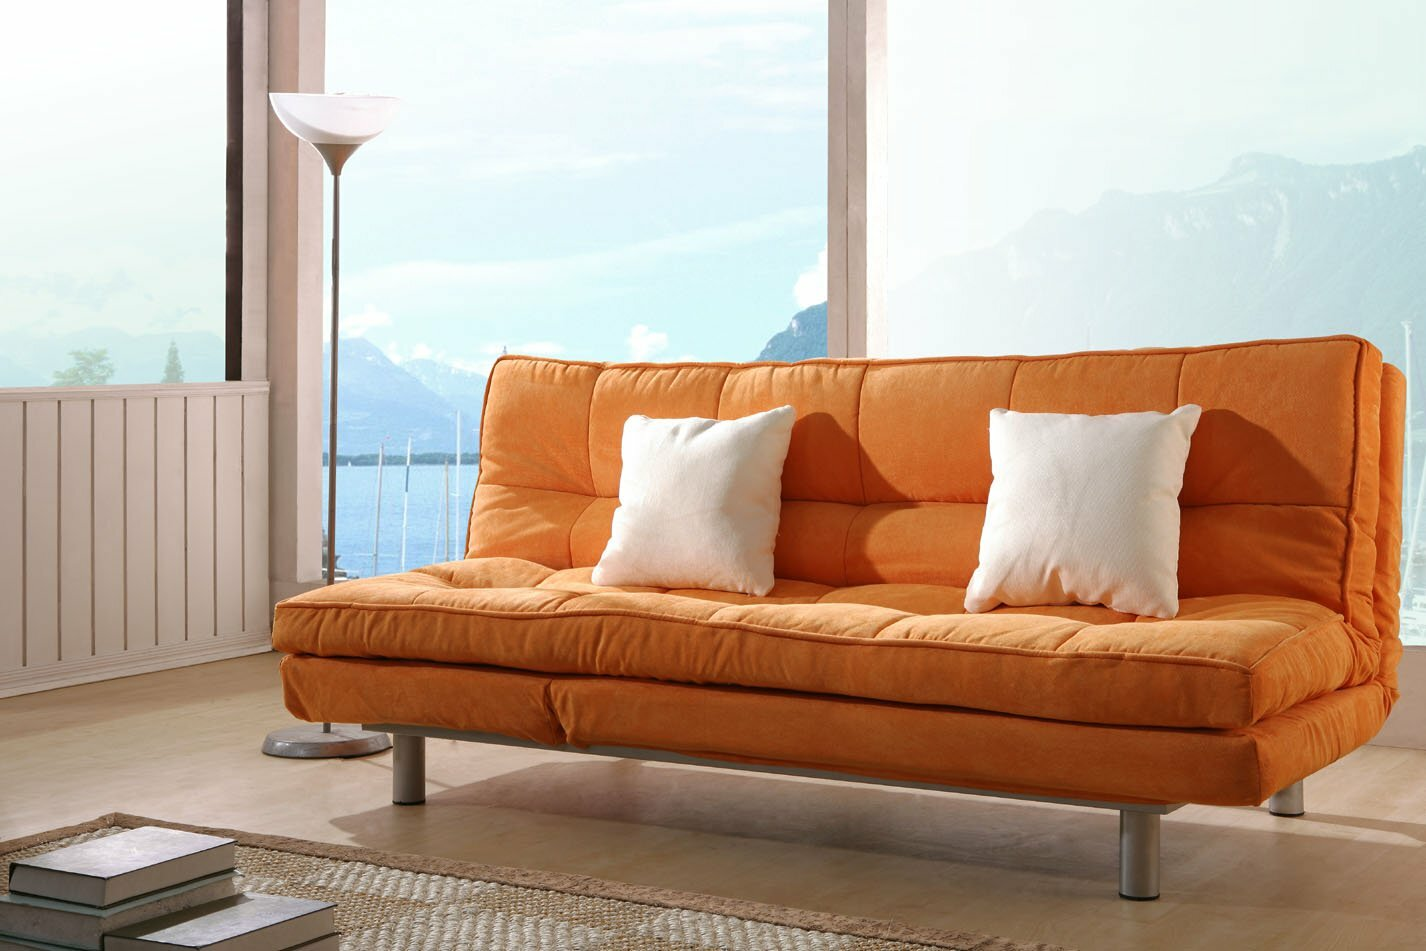 The 16 Most Beautiful Sofa Bed Designs Ever Mostbeautifulthings